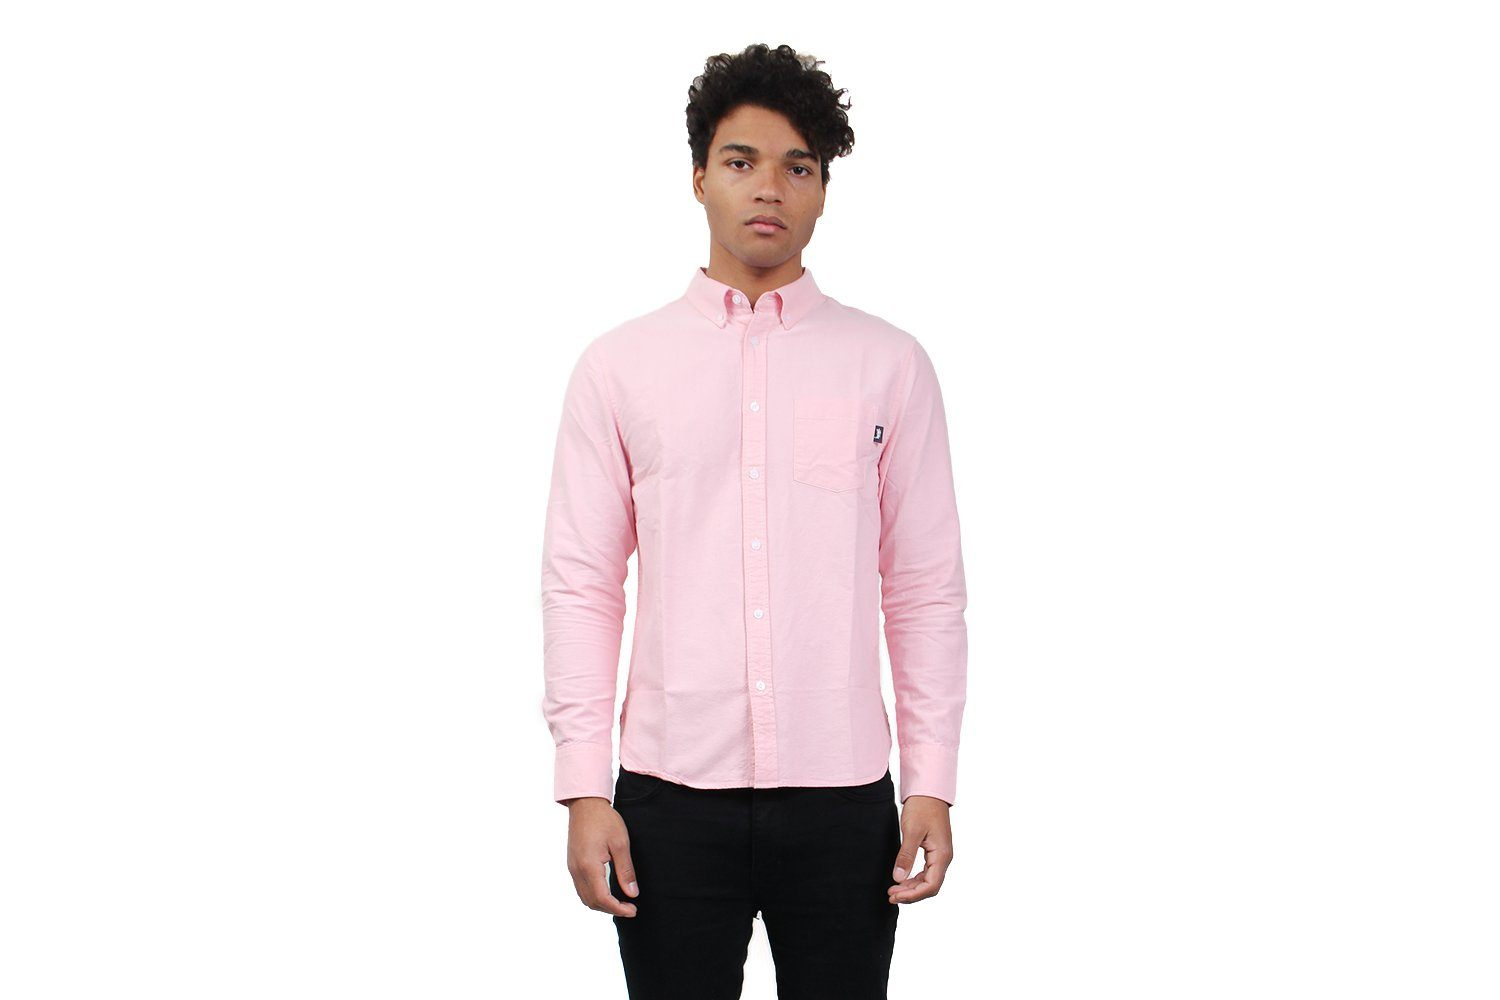 FRANK OXFORD LS SHIRT - 111964 MENS SOFTGOODS STUSSY PINK L